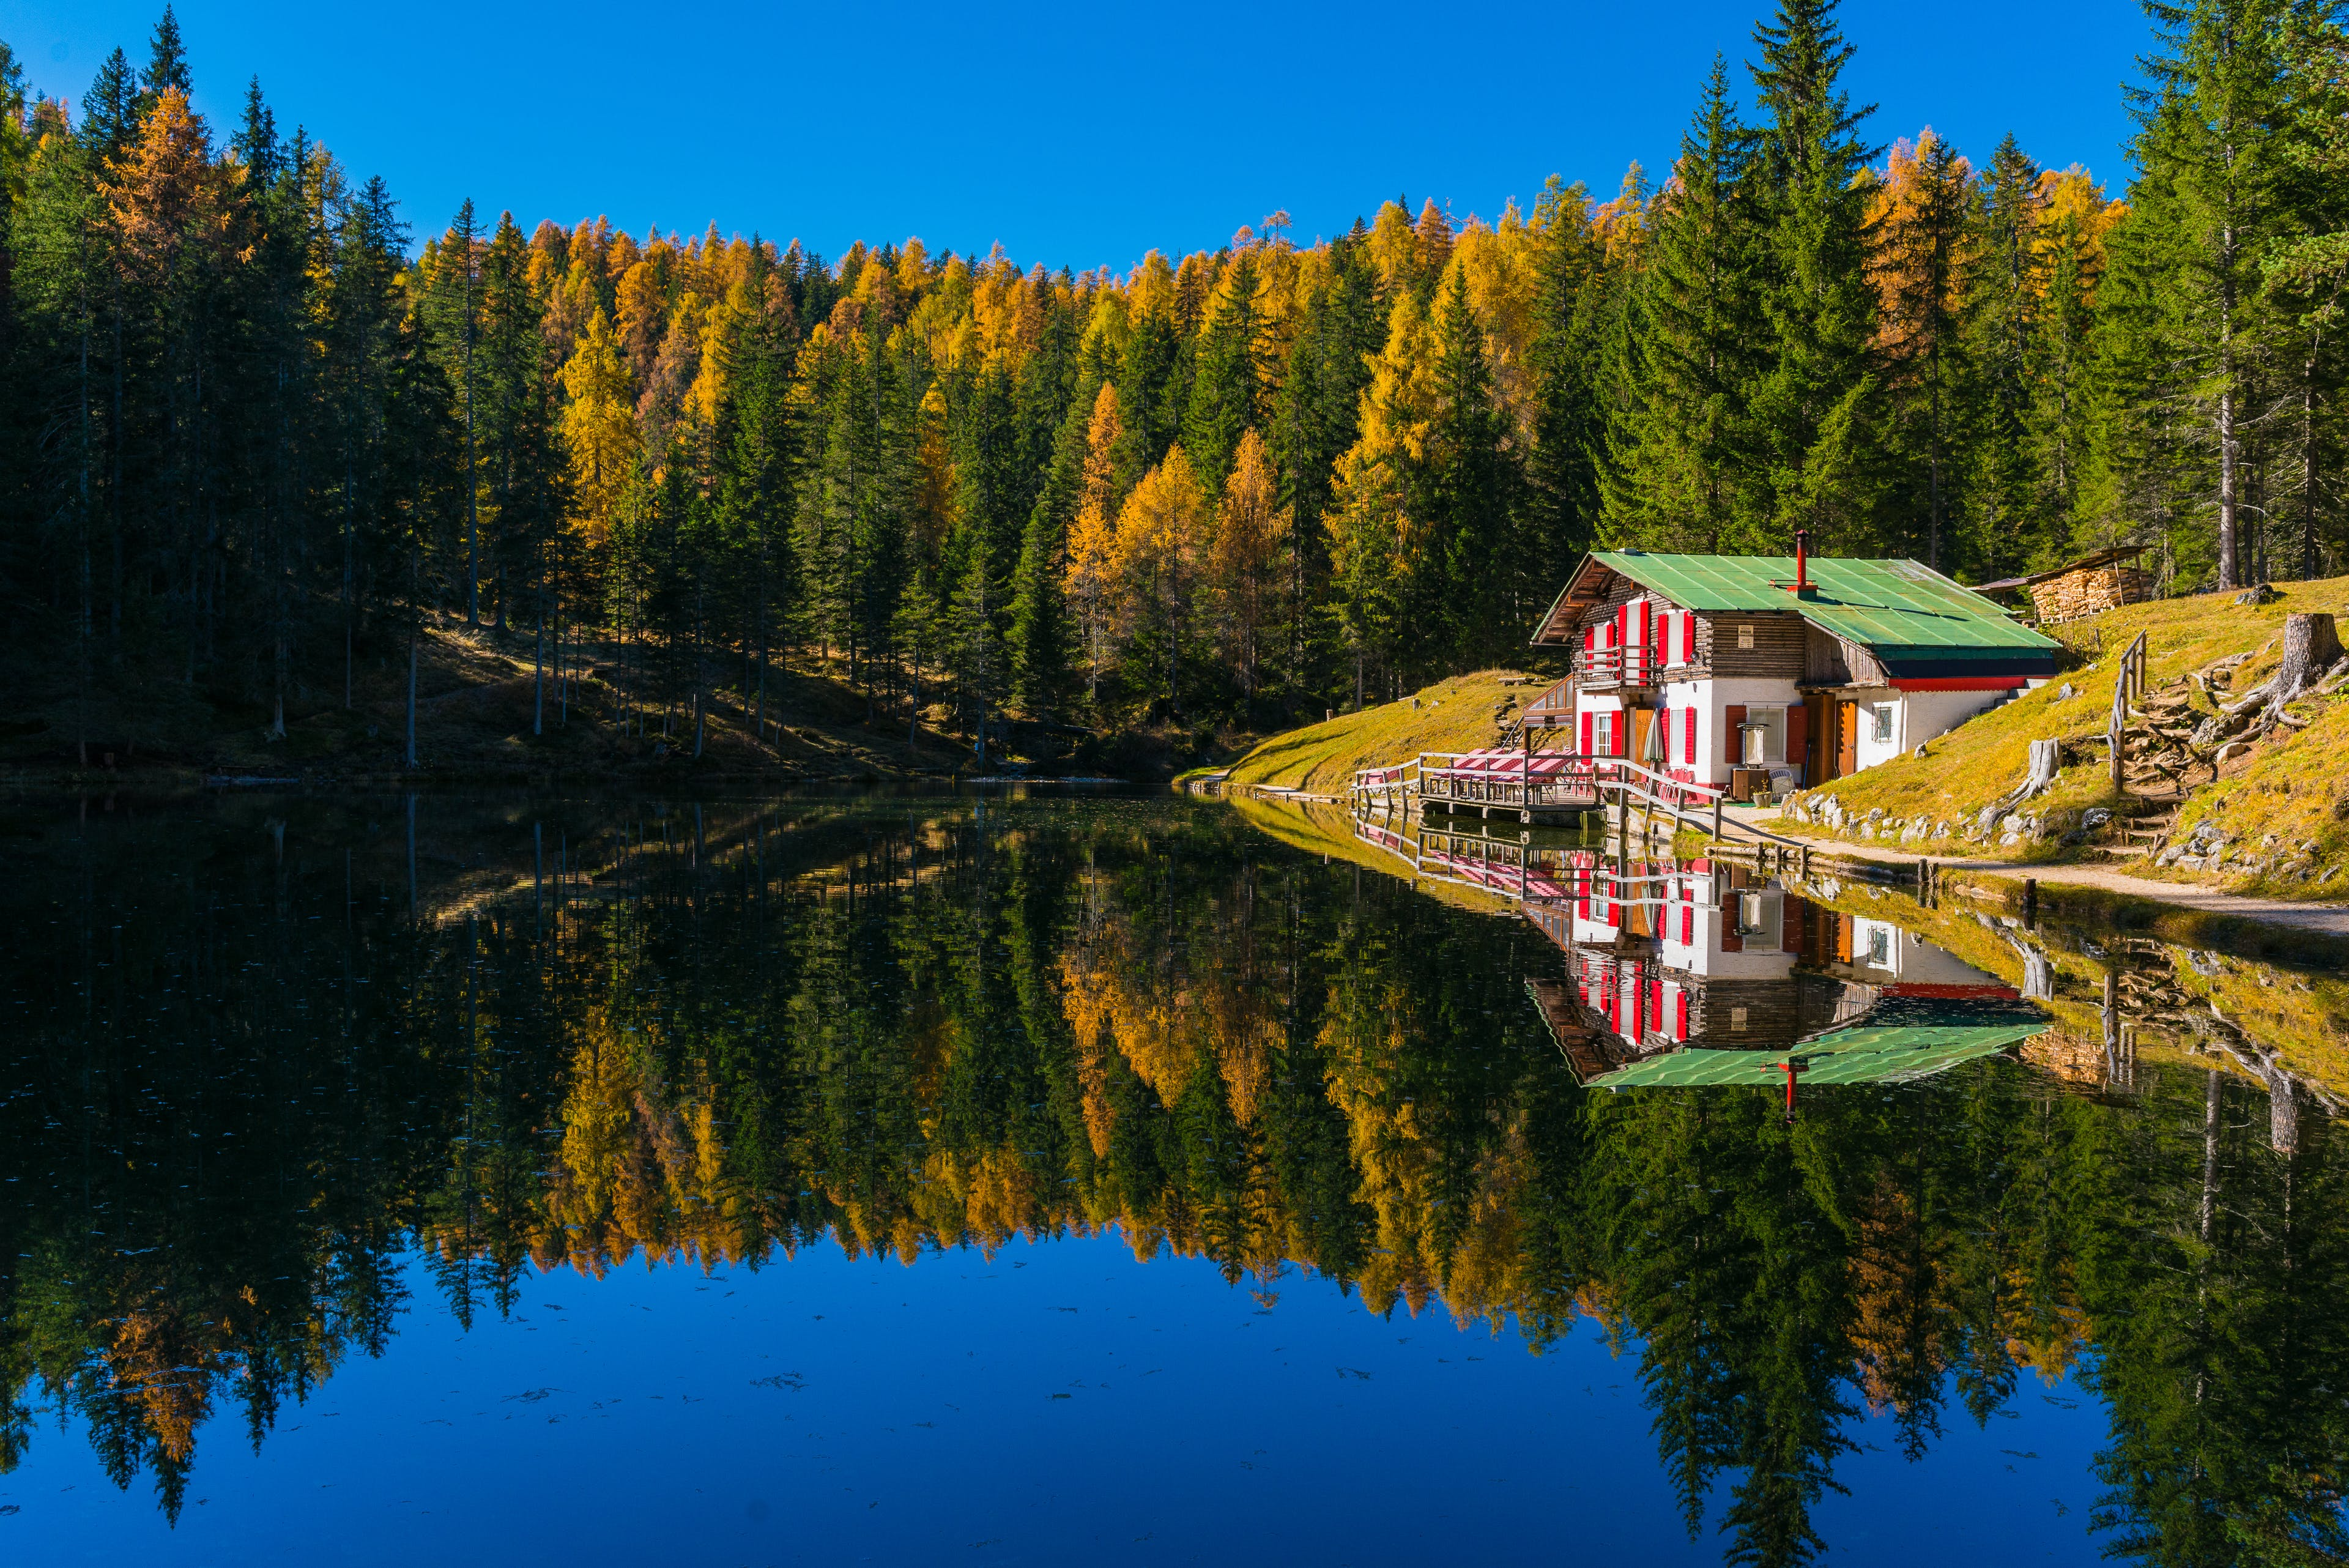 House Beside Lake Surrounded by Trees